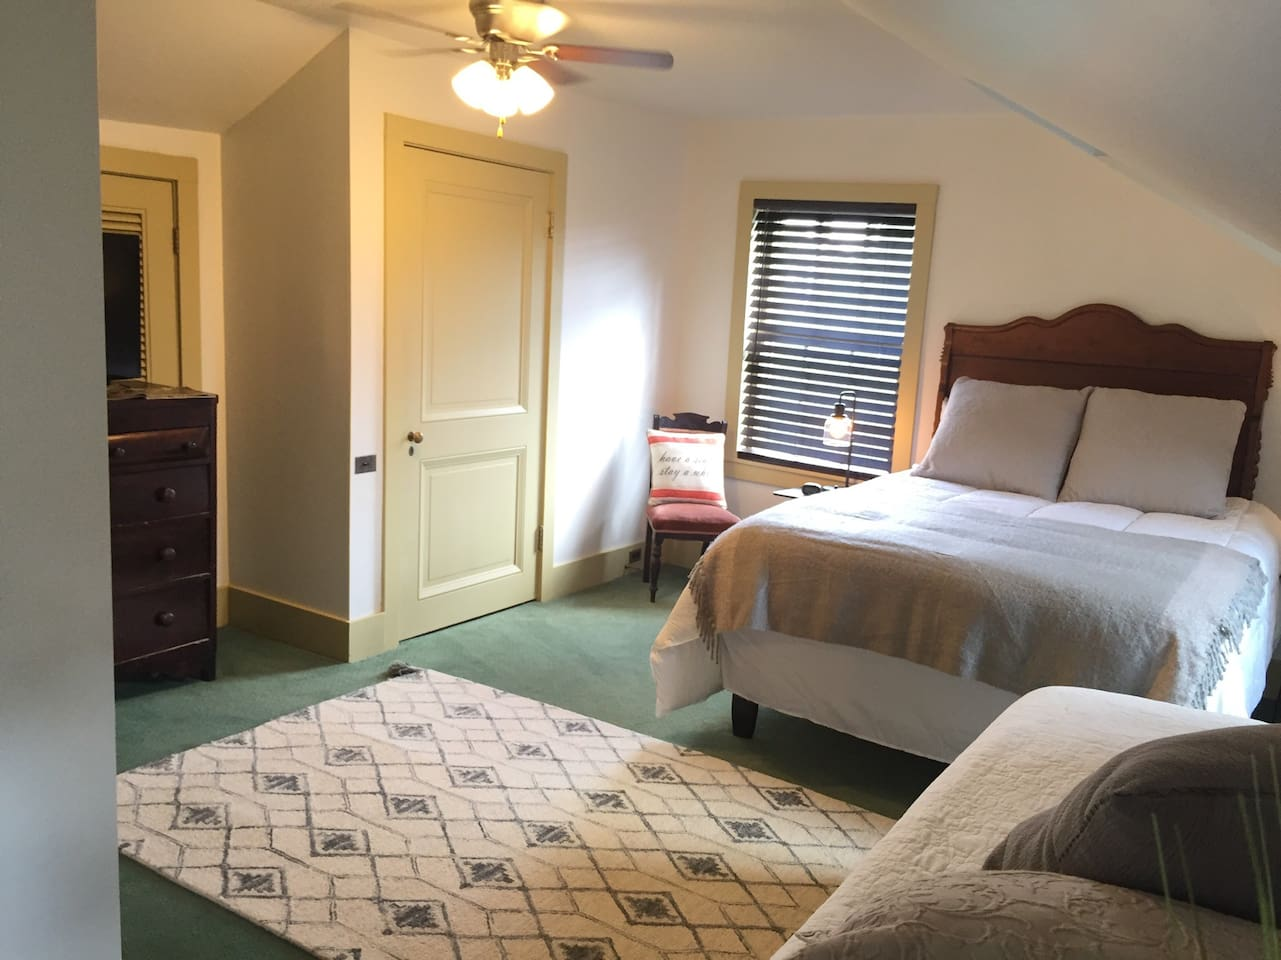 Our recently renovated Vivaldi Suite is located on the third floor - and many believe it to be the best room in the house!